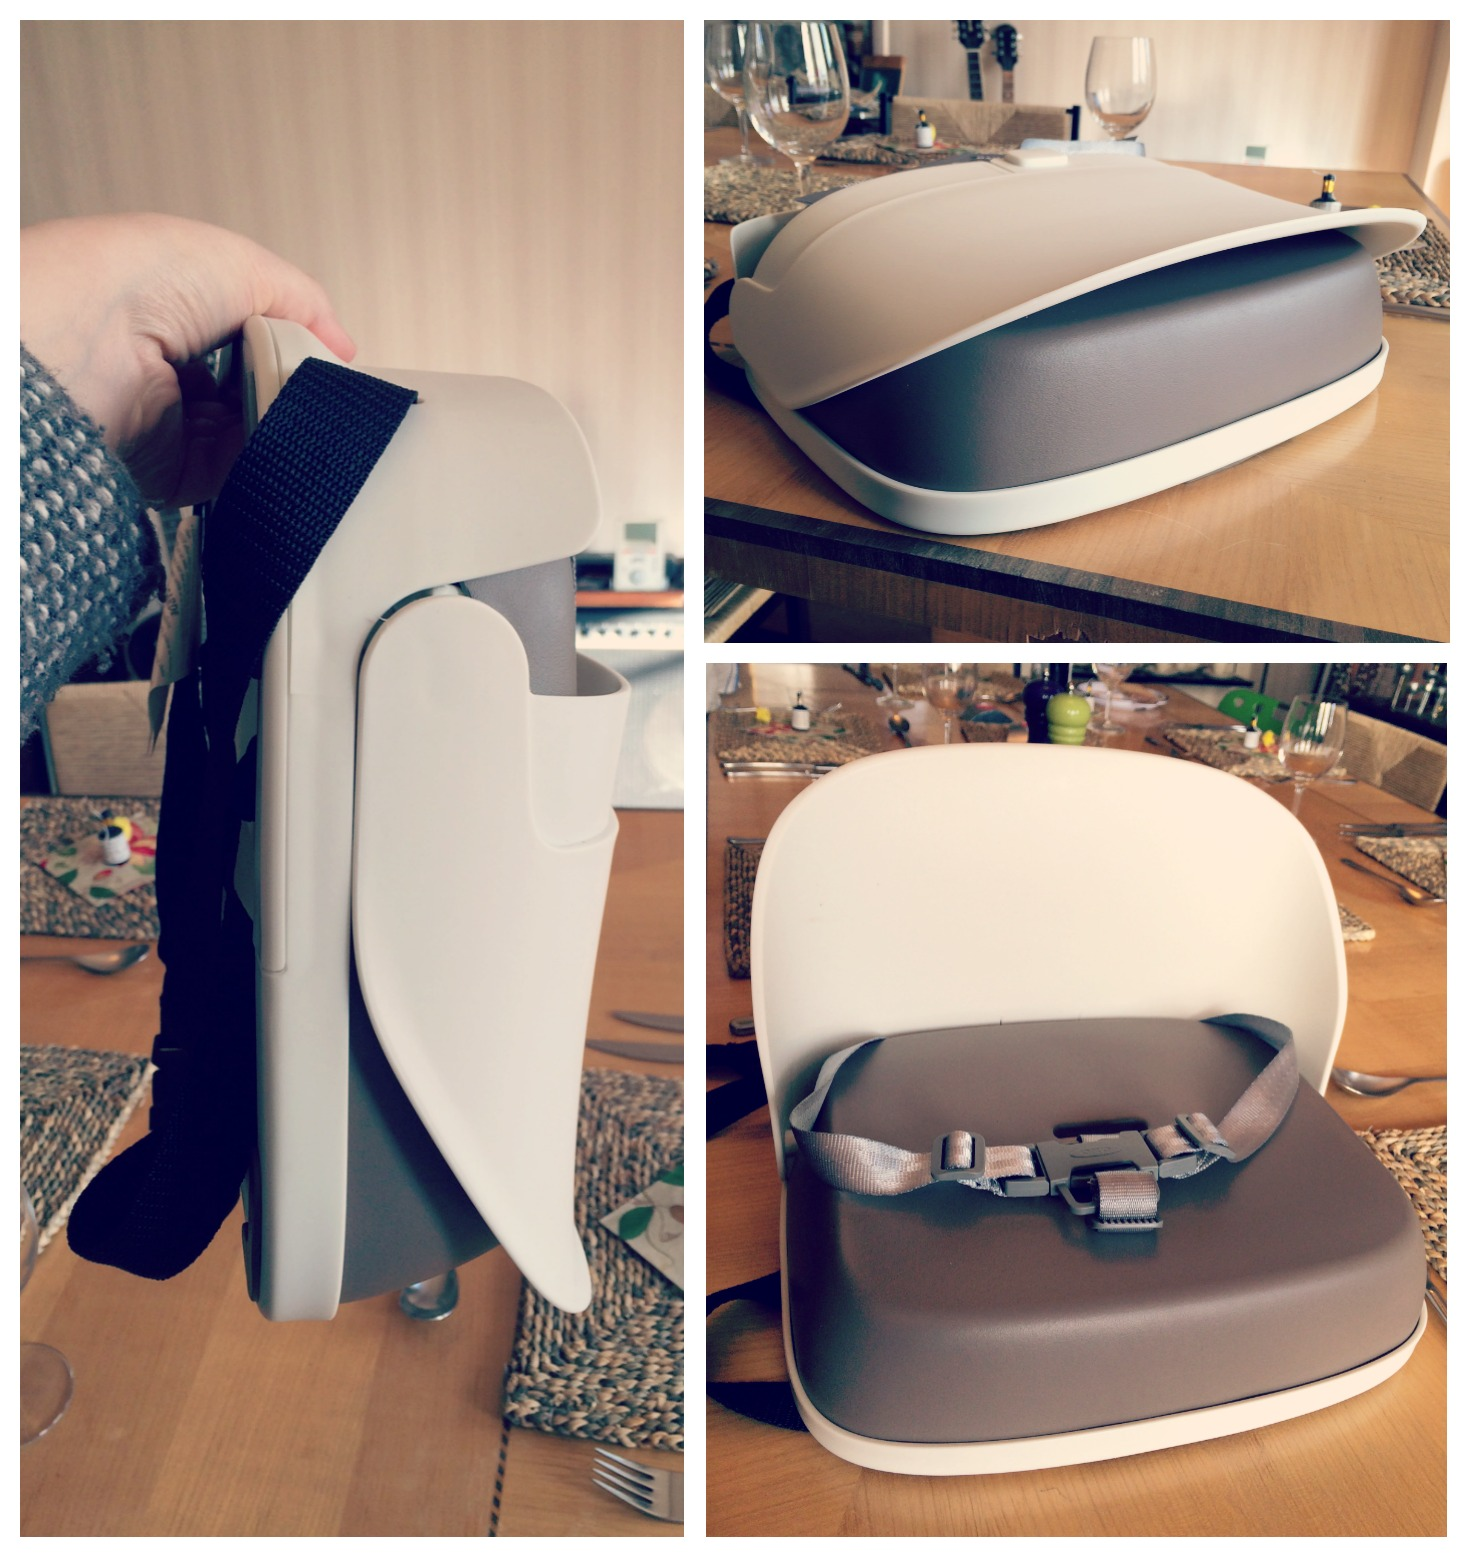 64ce6731fc14 As we live in a small house I love products that fold away or are compact.  The OXO tot Perch Booster seat does exactly this as you can see above.